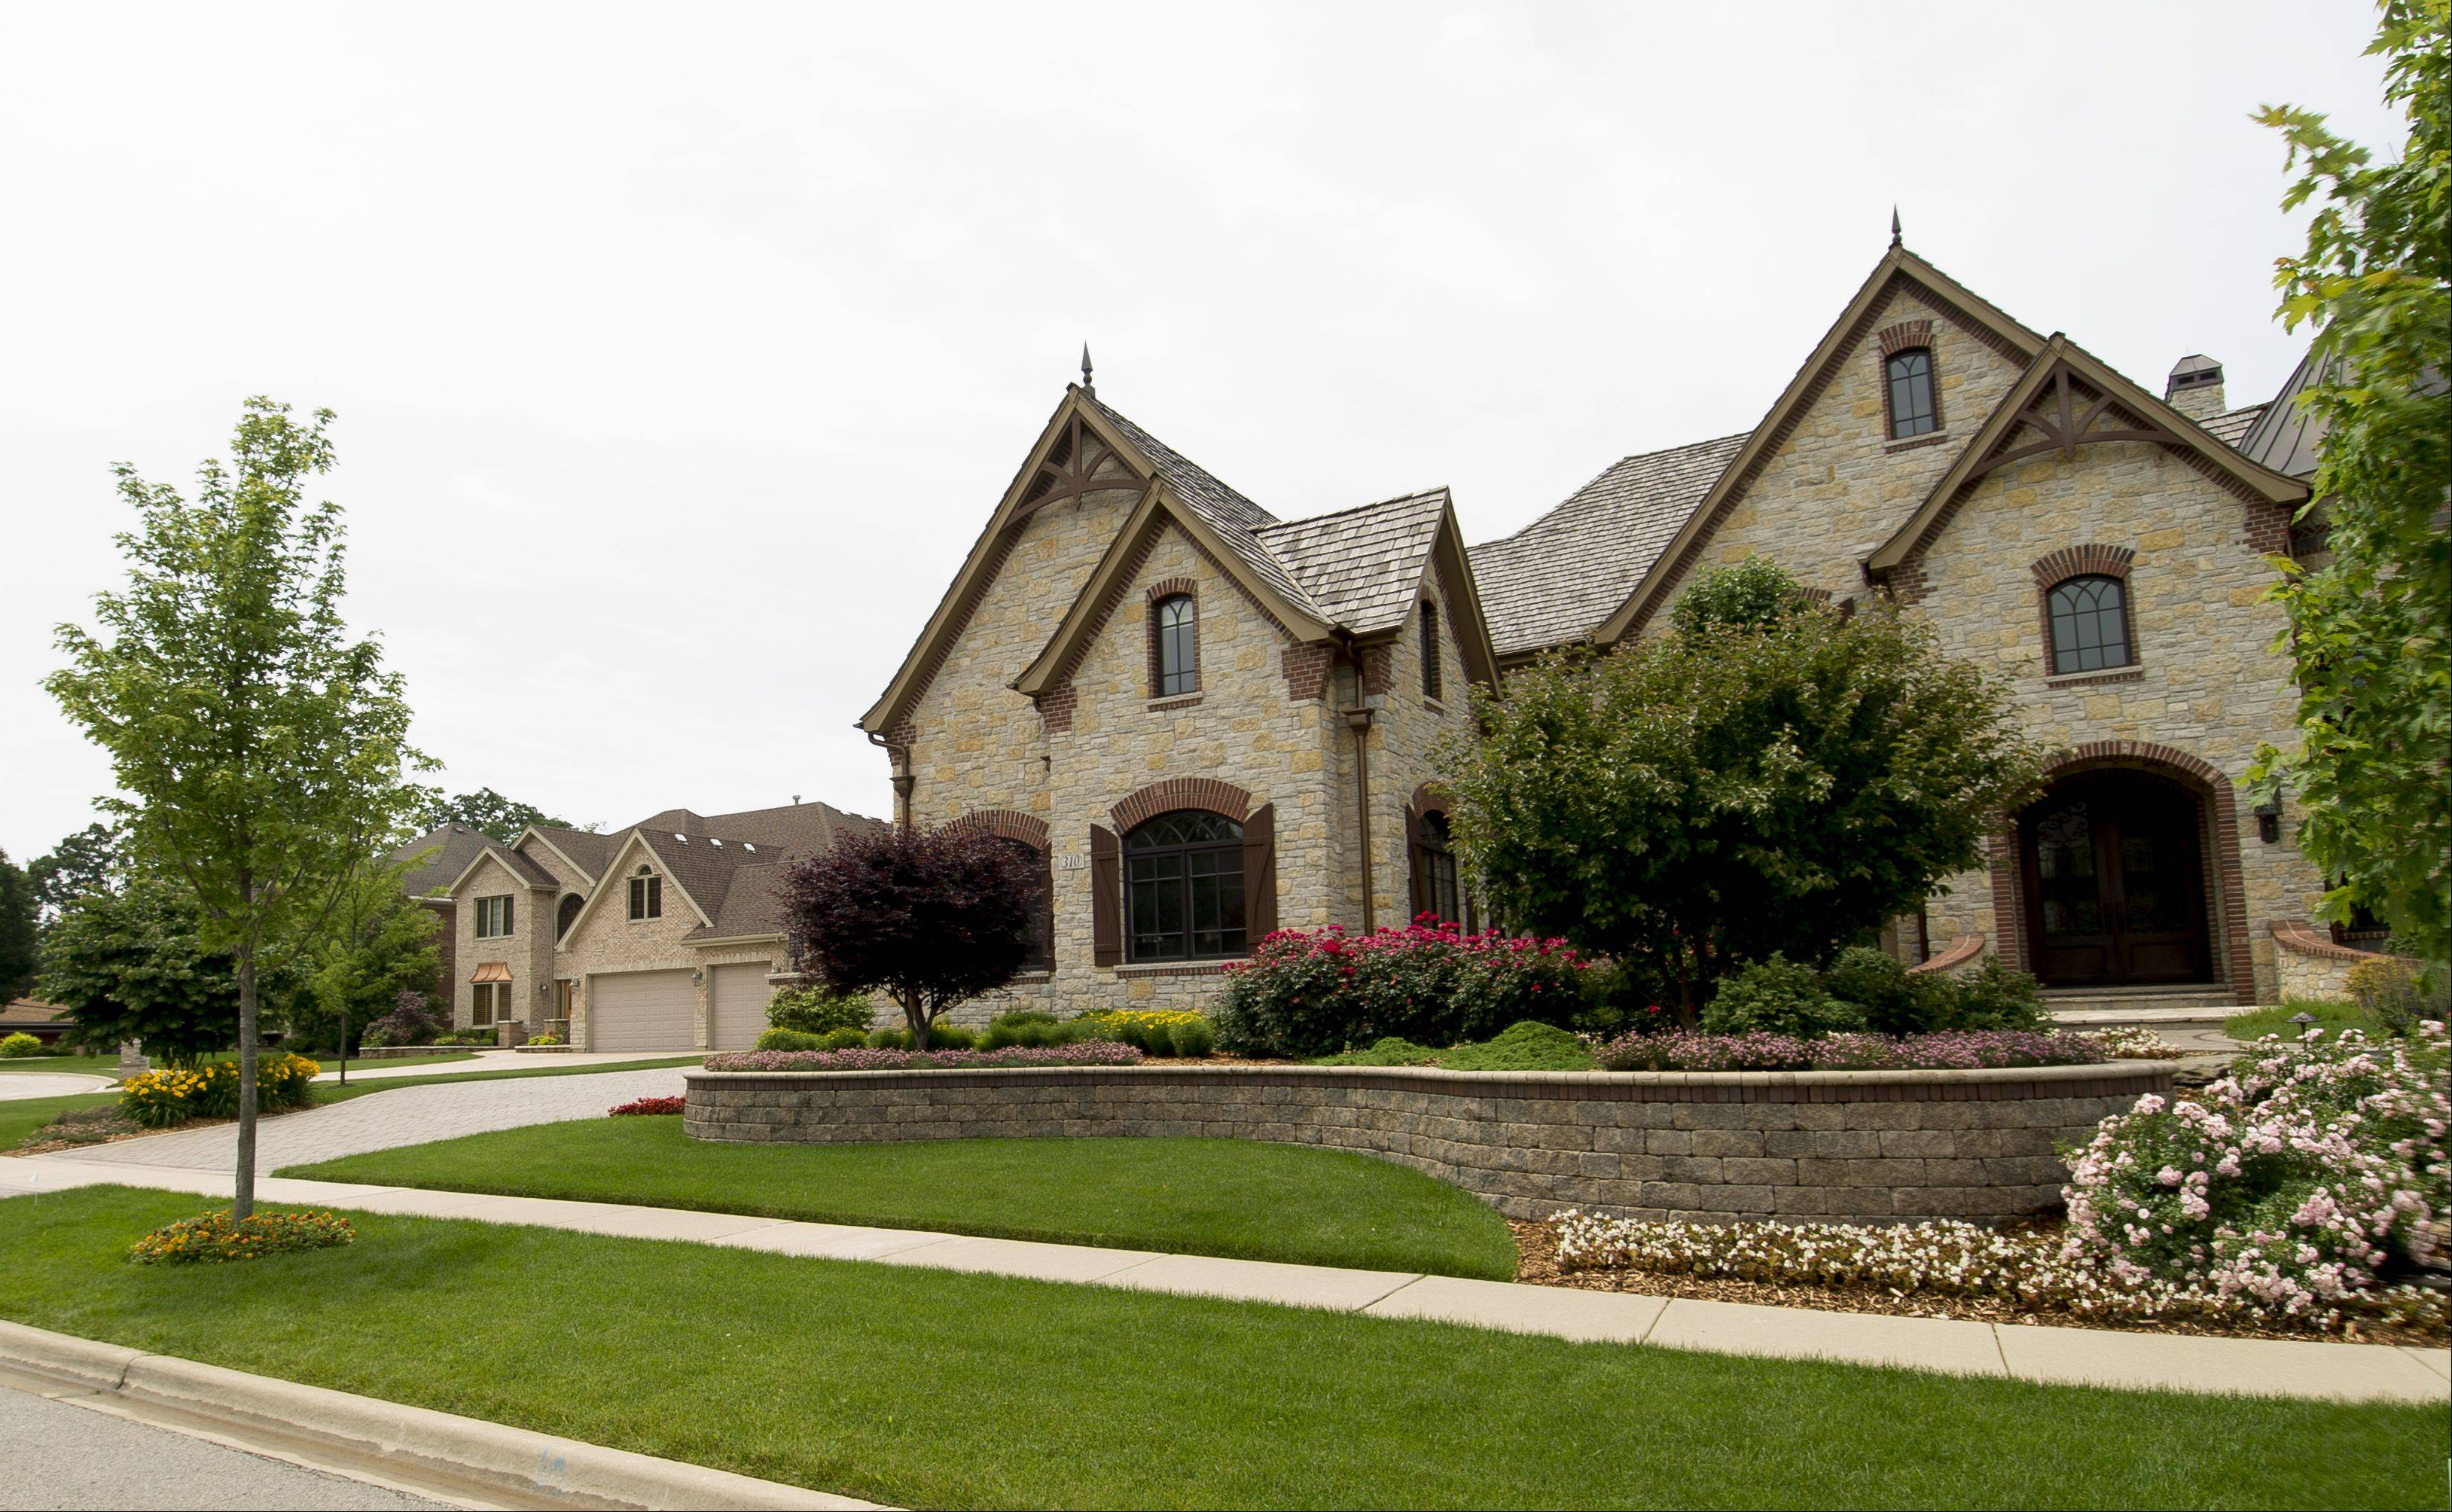 Homes in Addison's Oak Forest Estates were custom built, most by developer Performance Builders.